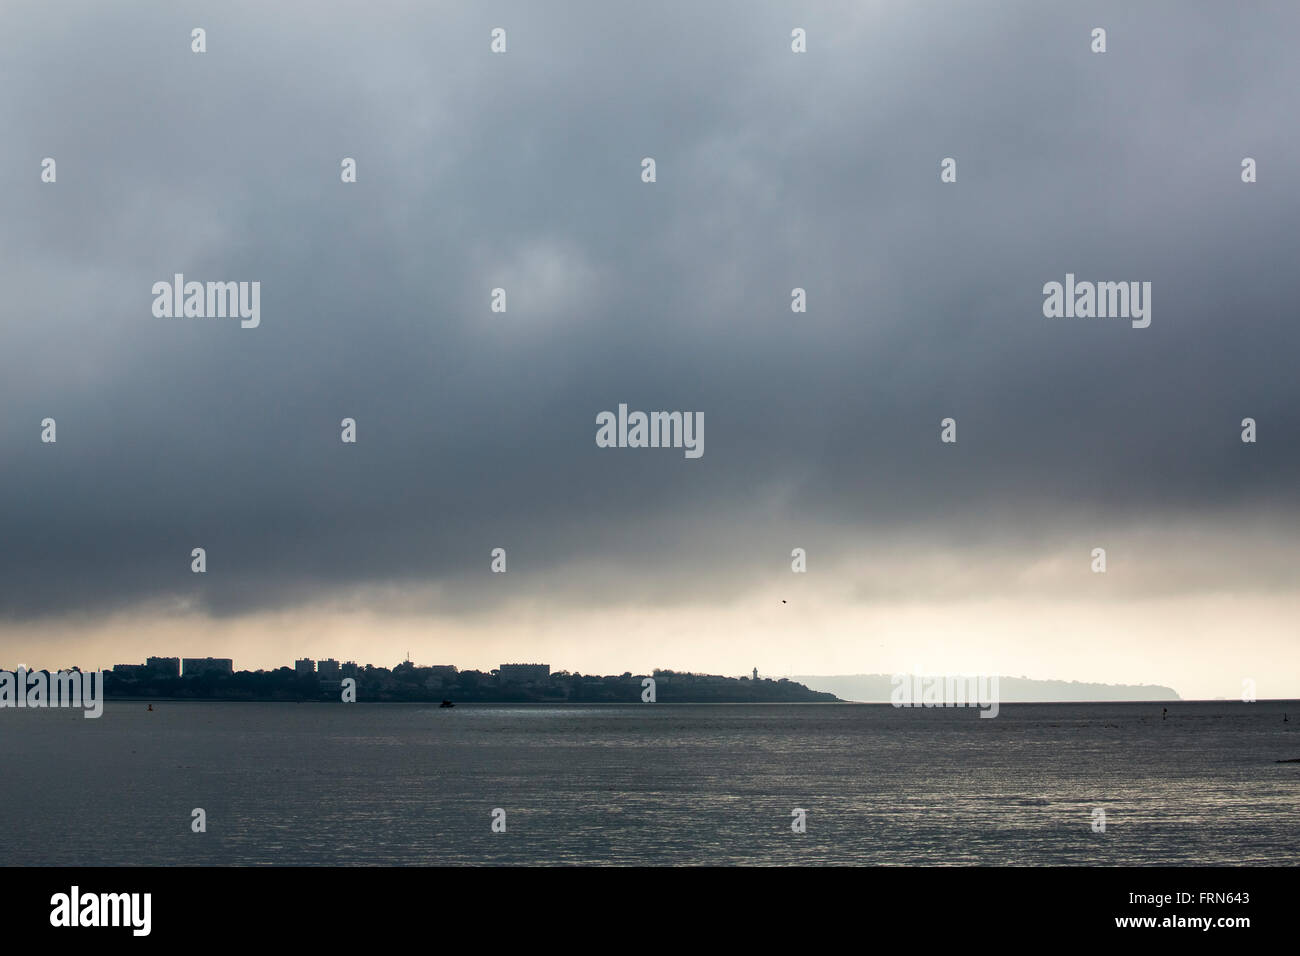 Rain clouds clearing over Saint-Georges-de-Didonne - Stock Image